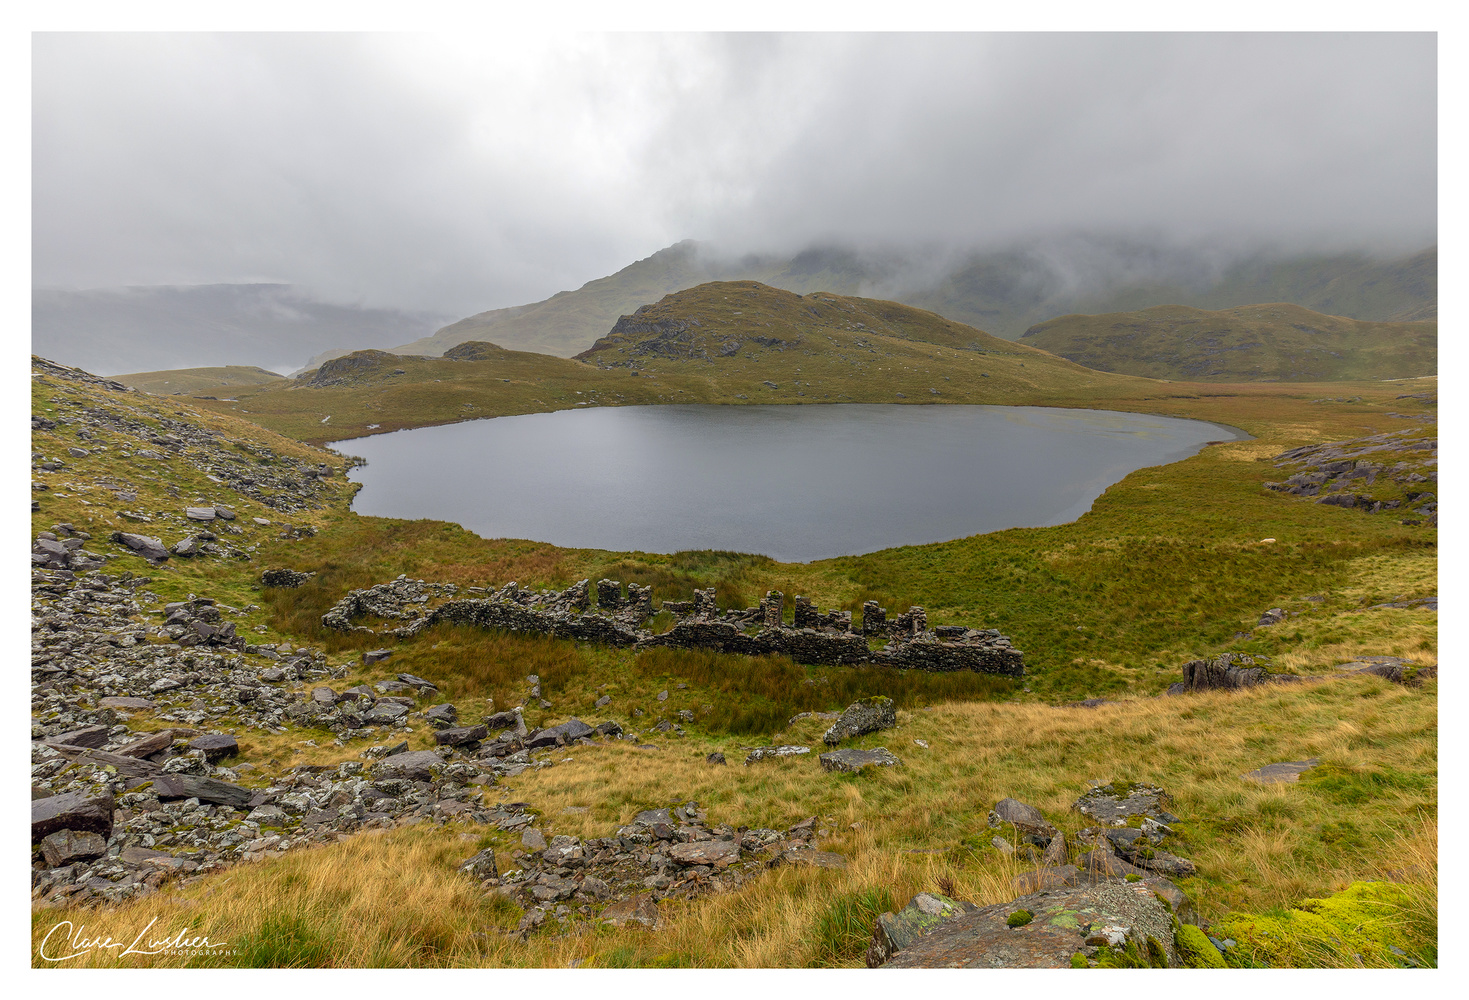 Snowdon by Clare Lusher